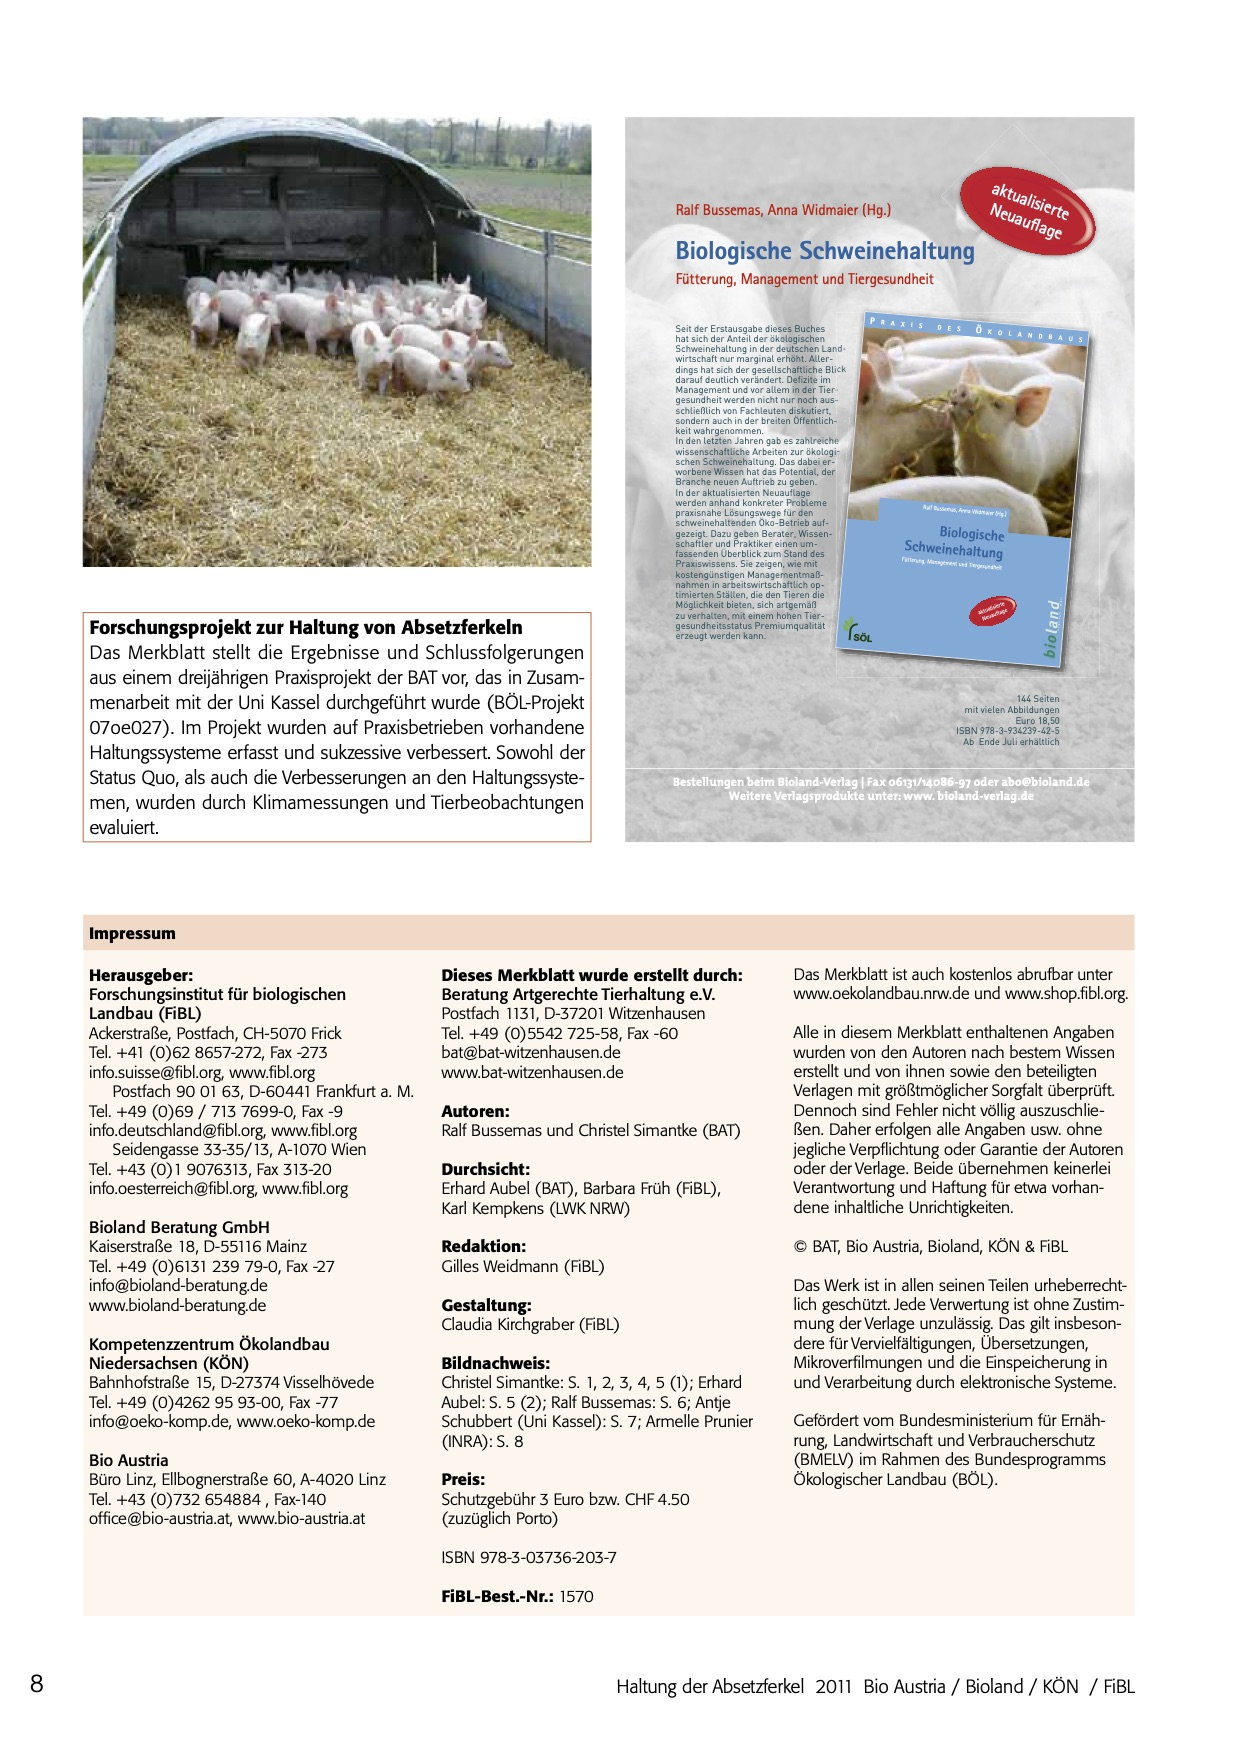 Optimising weaning management in piglets